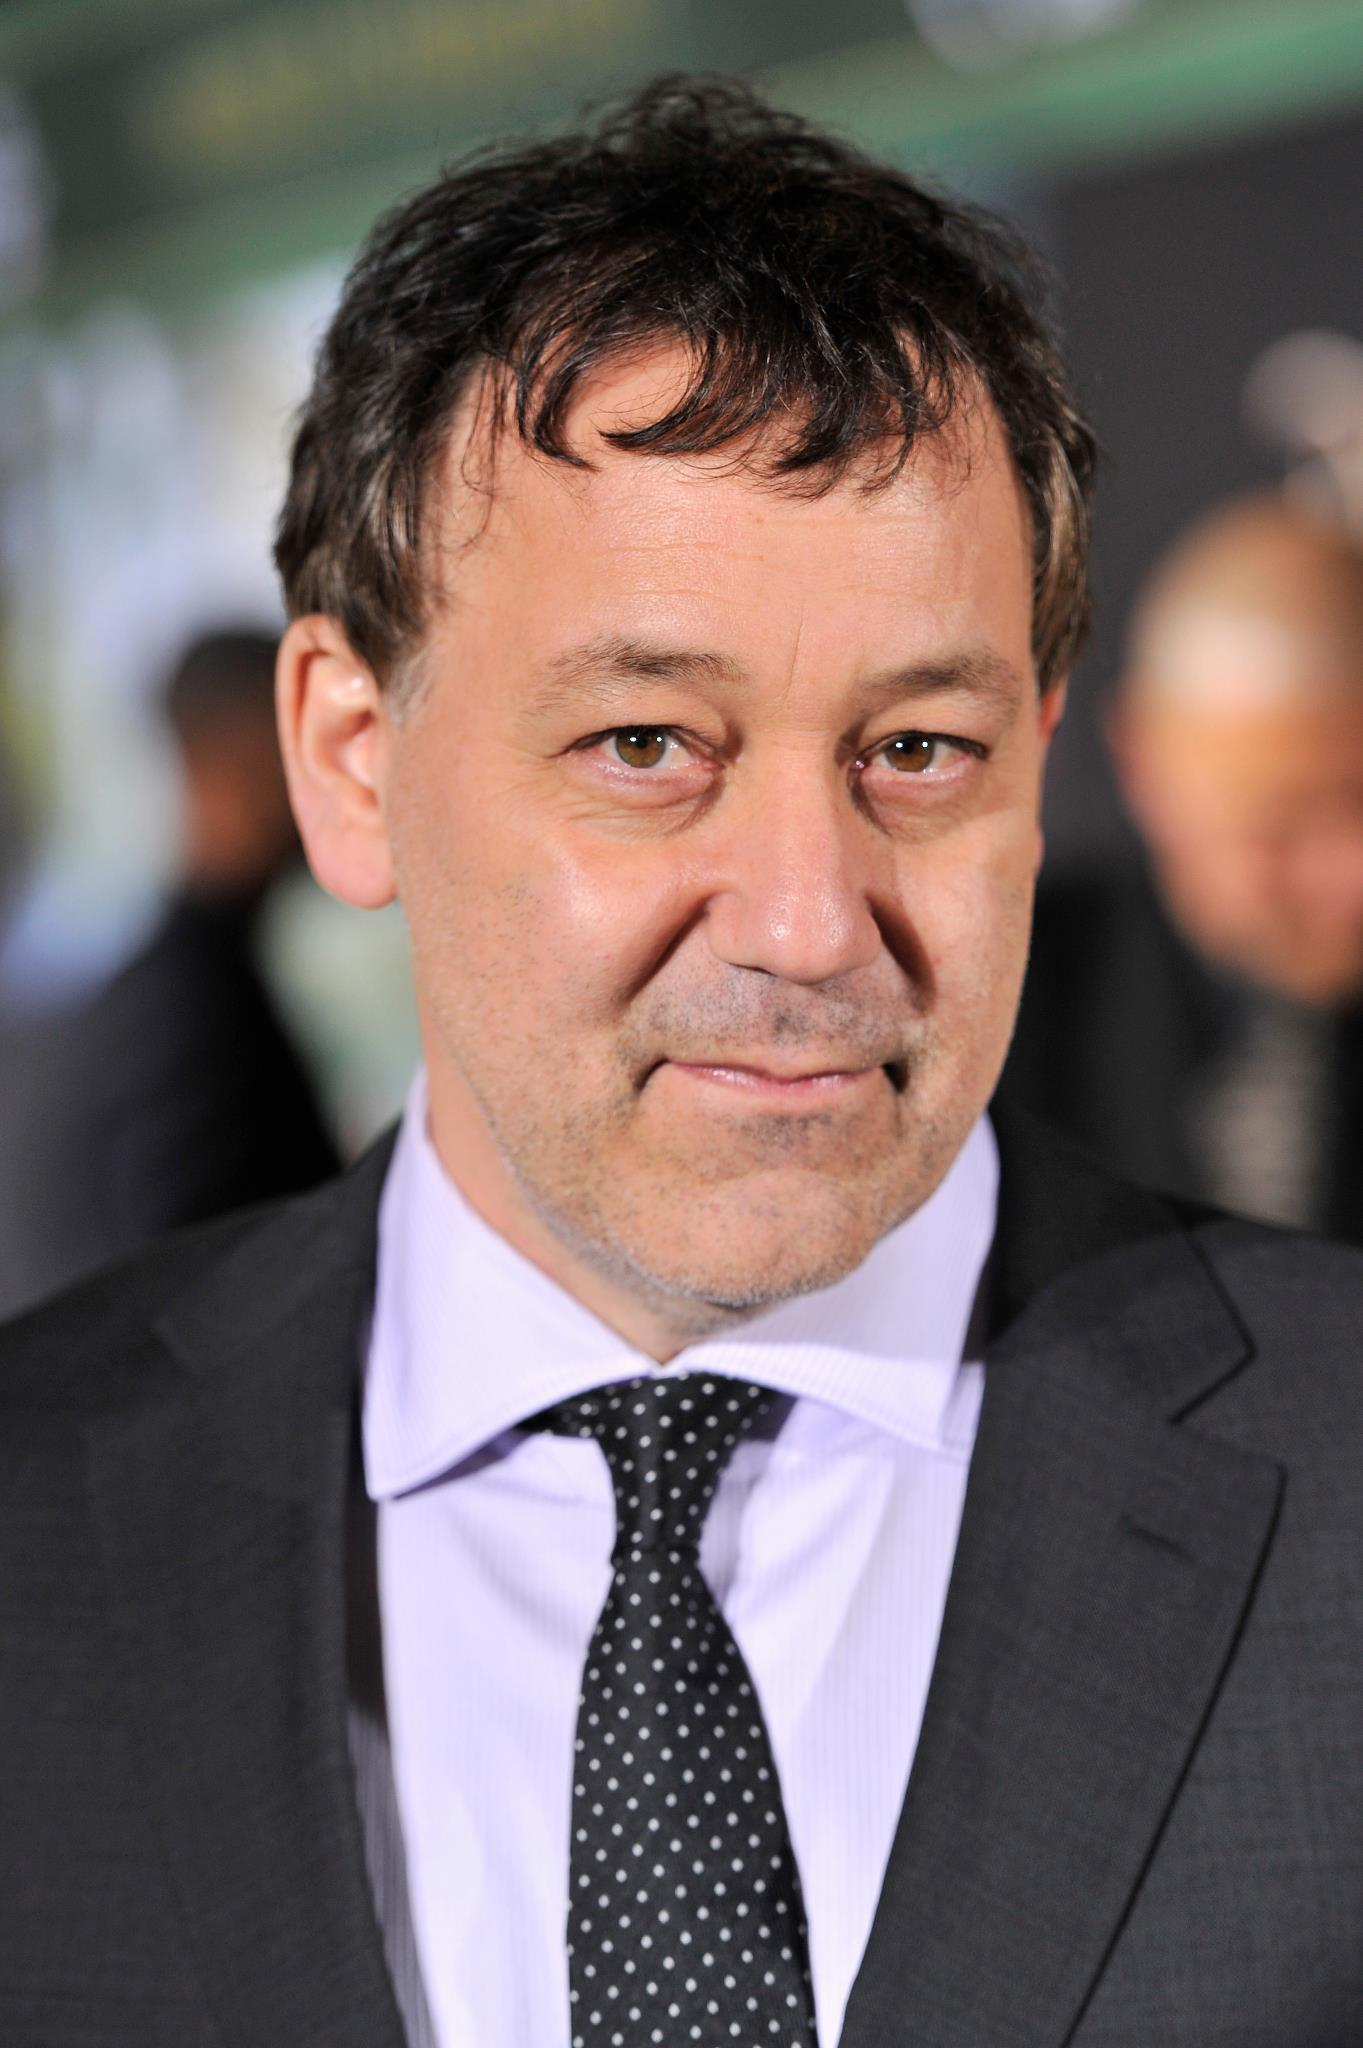 SAM RAIMI SET TO EXEC PRODUCE NEW SUPERNATURAL SHOW FOR NBC